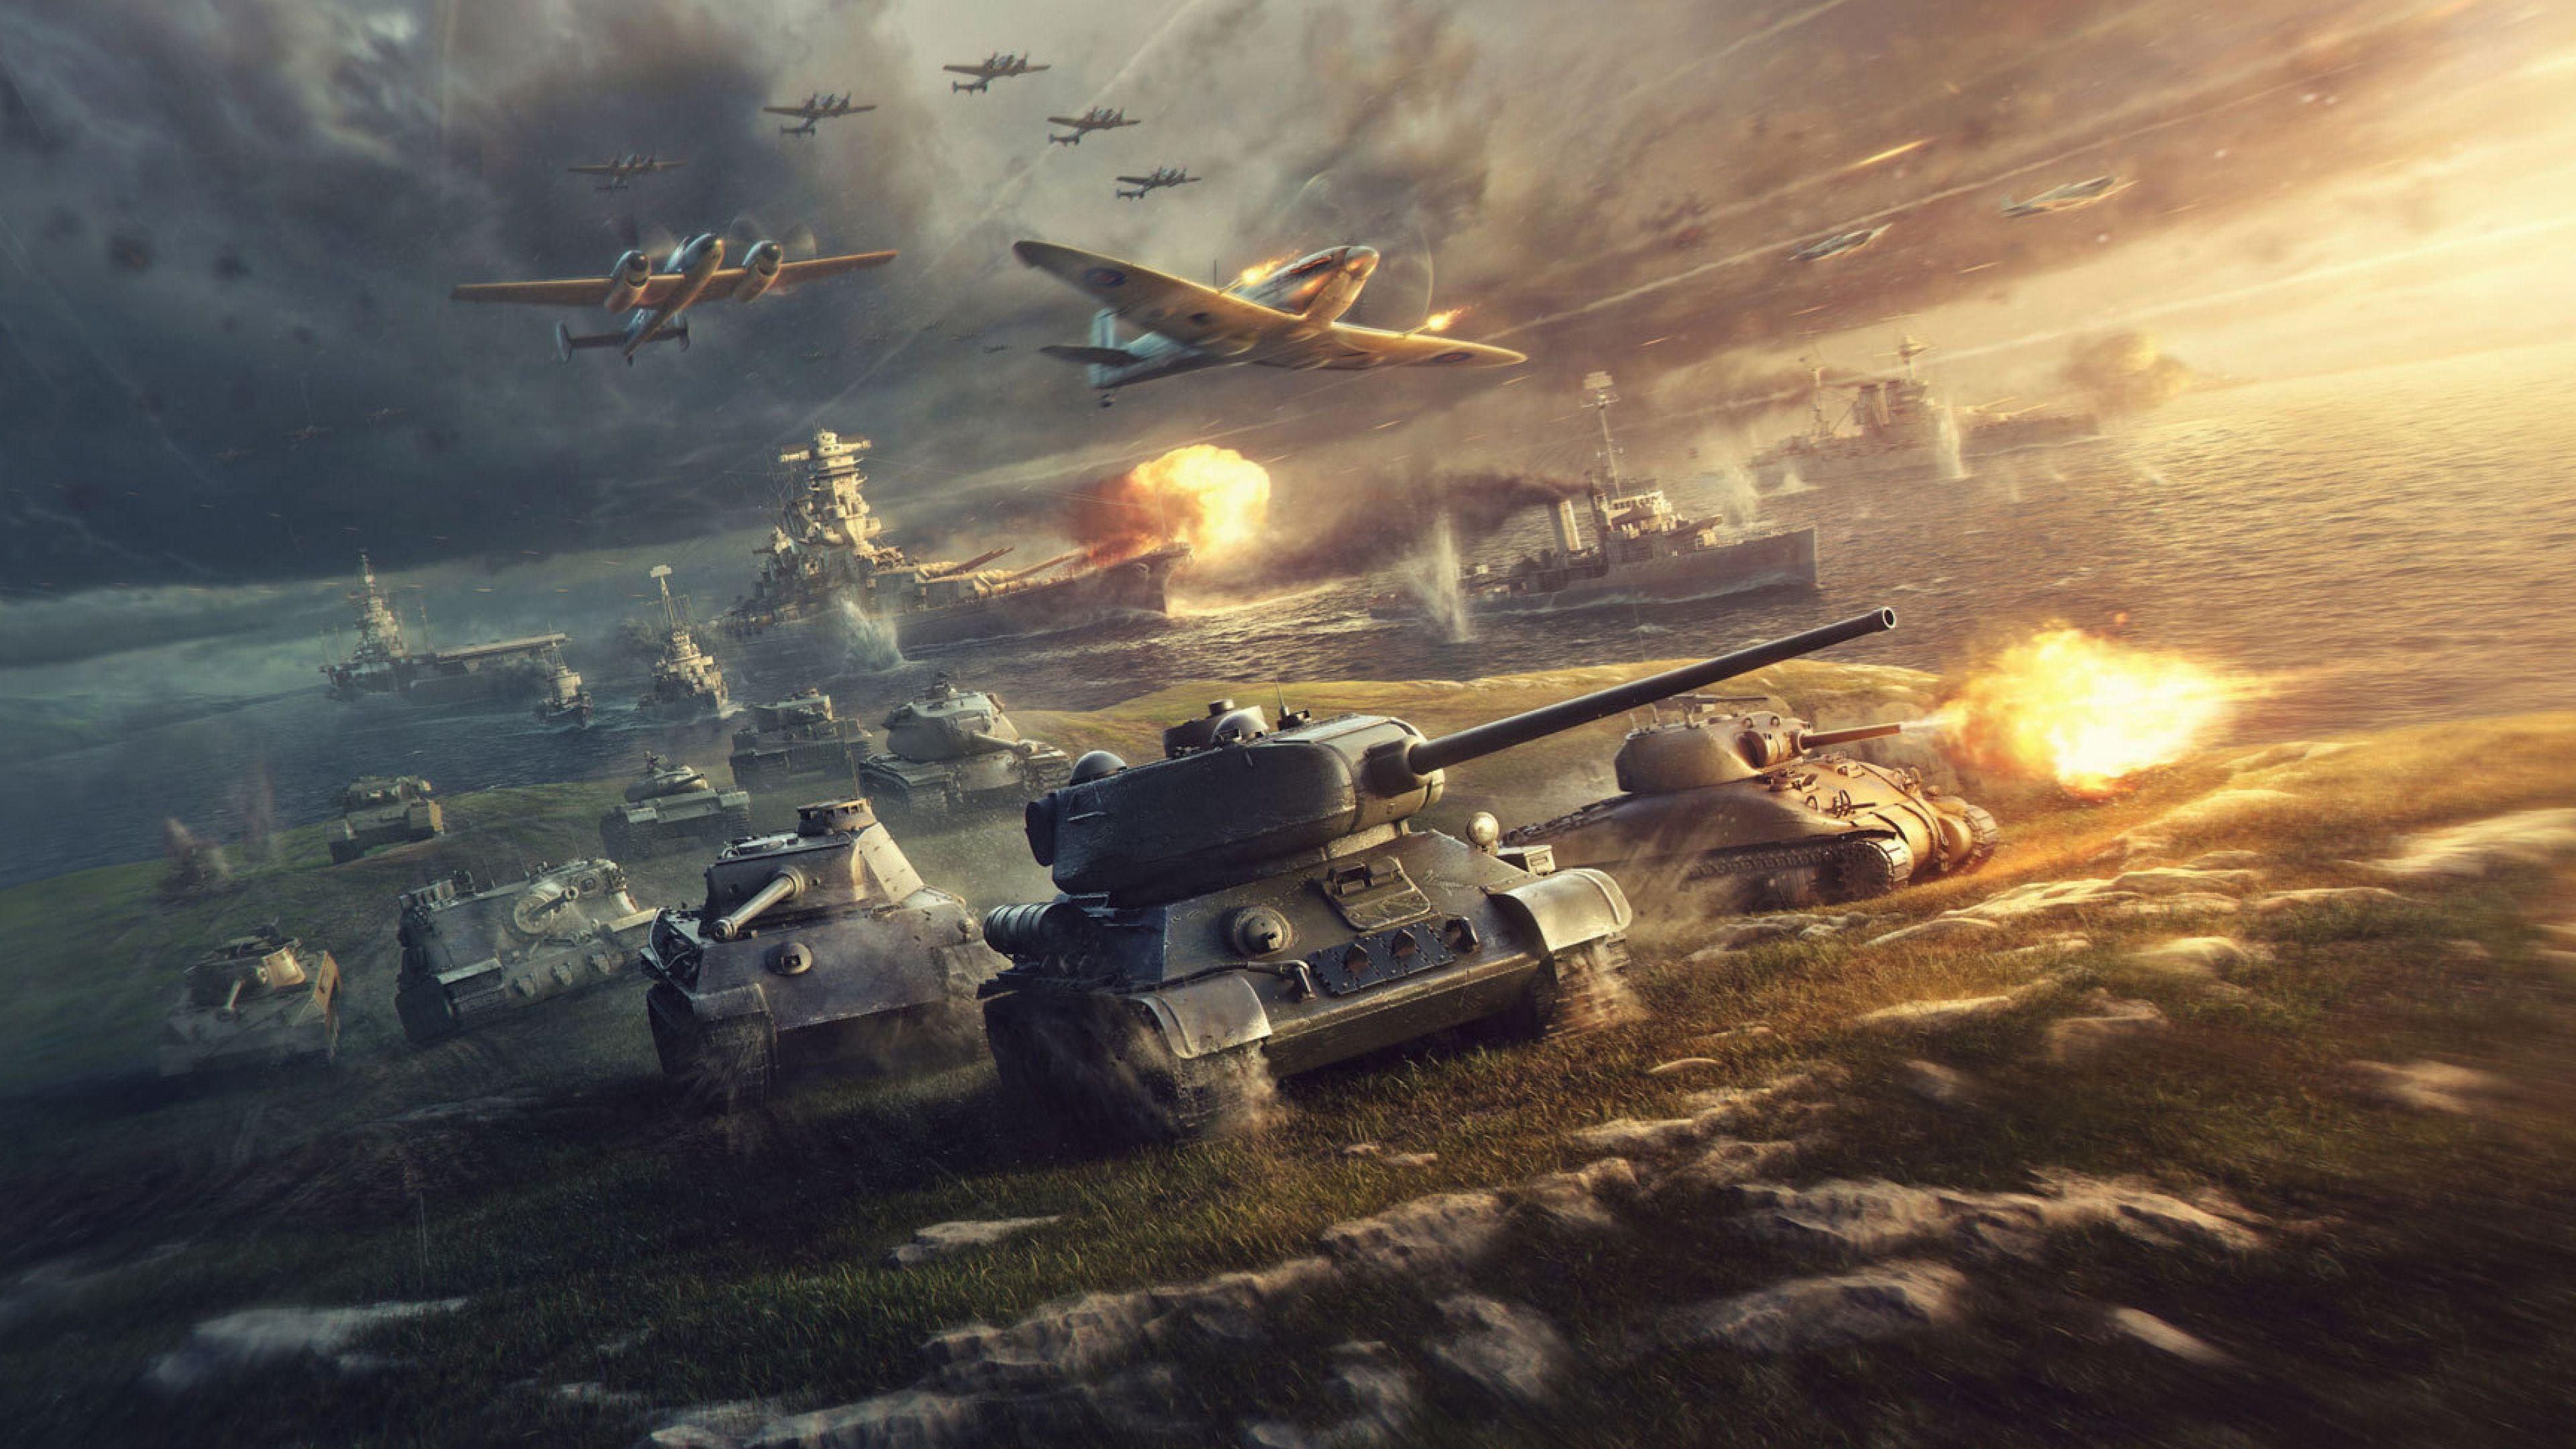 World Of Tanks Wallpapers 1920x1080 - Wallpaper Cave